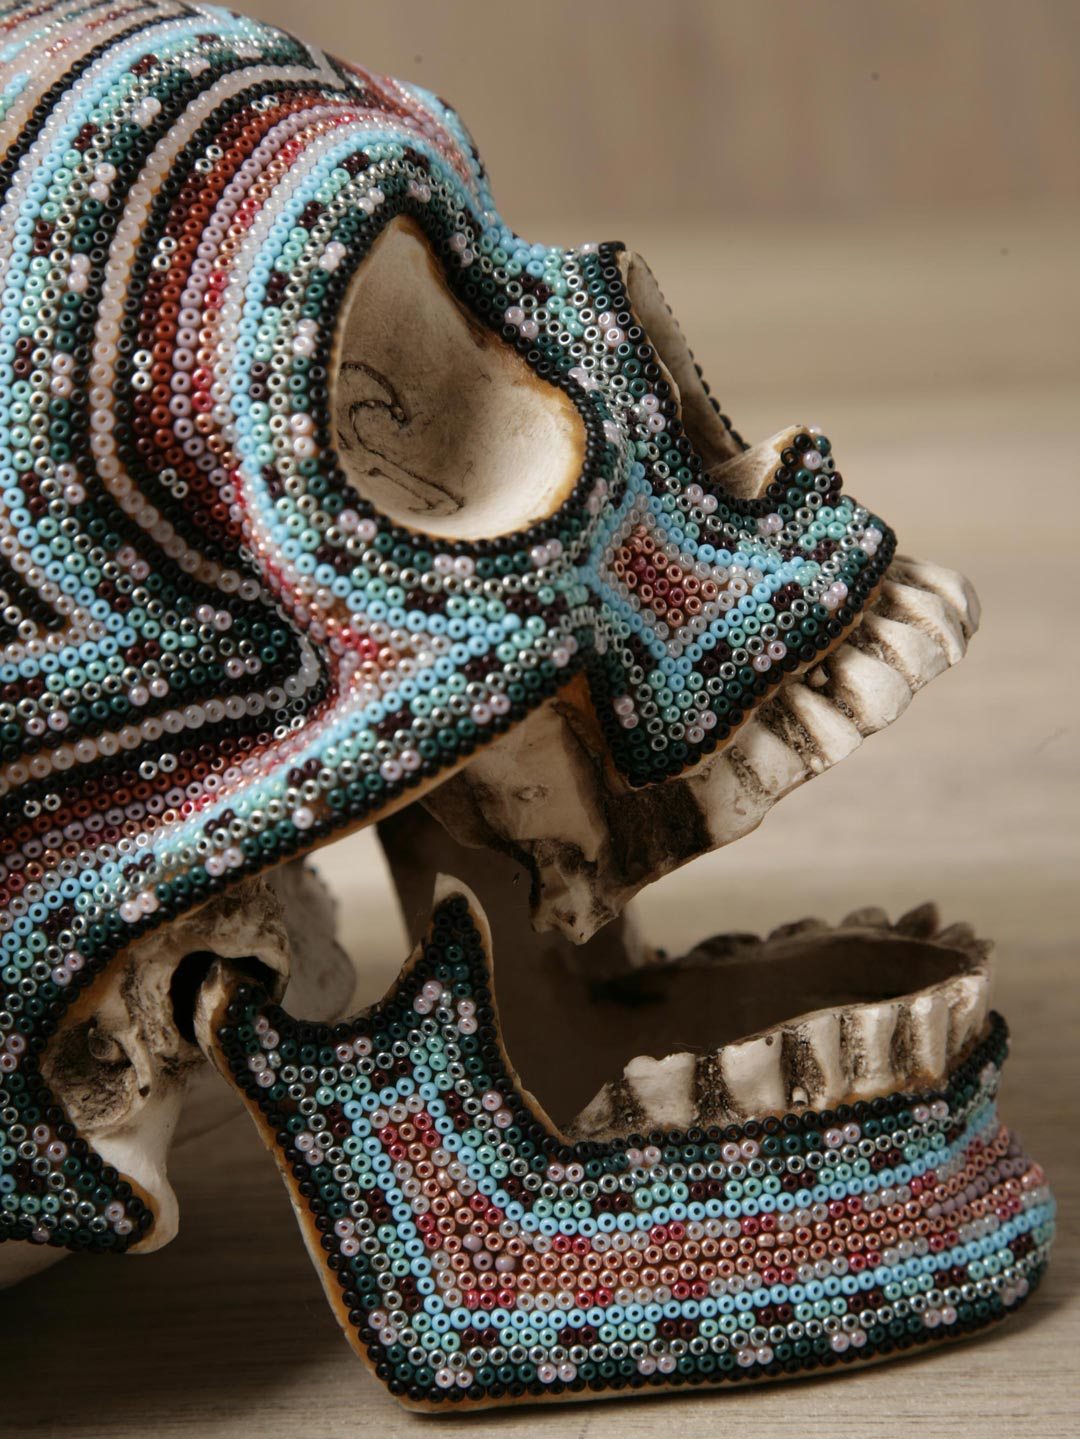 Beaded Skulls by Our Exquisite Corpse: our_exquisite_corpse_skulls_16_20111017_1885326651.jpg